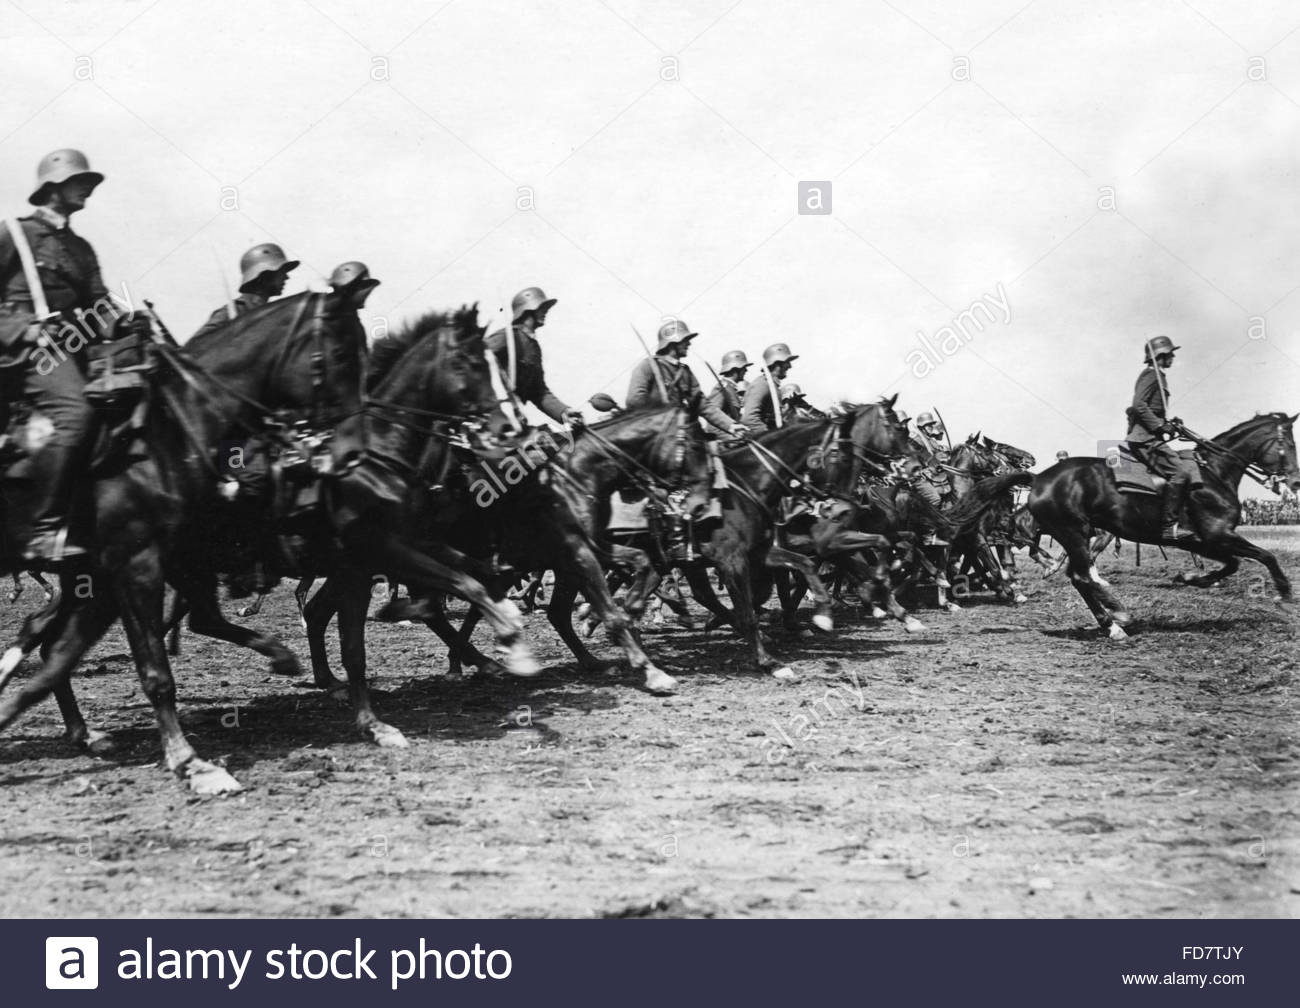 Cavalrymen at the Reichswehr parade in Roemhild in Thuringia - Stock Image